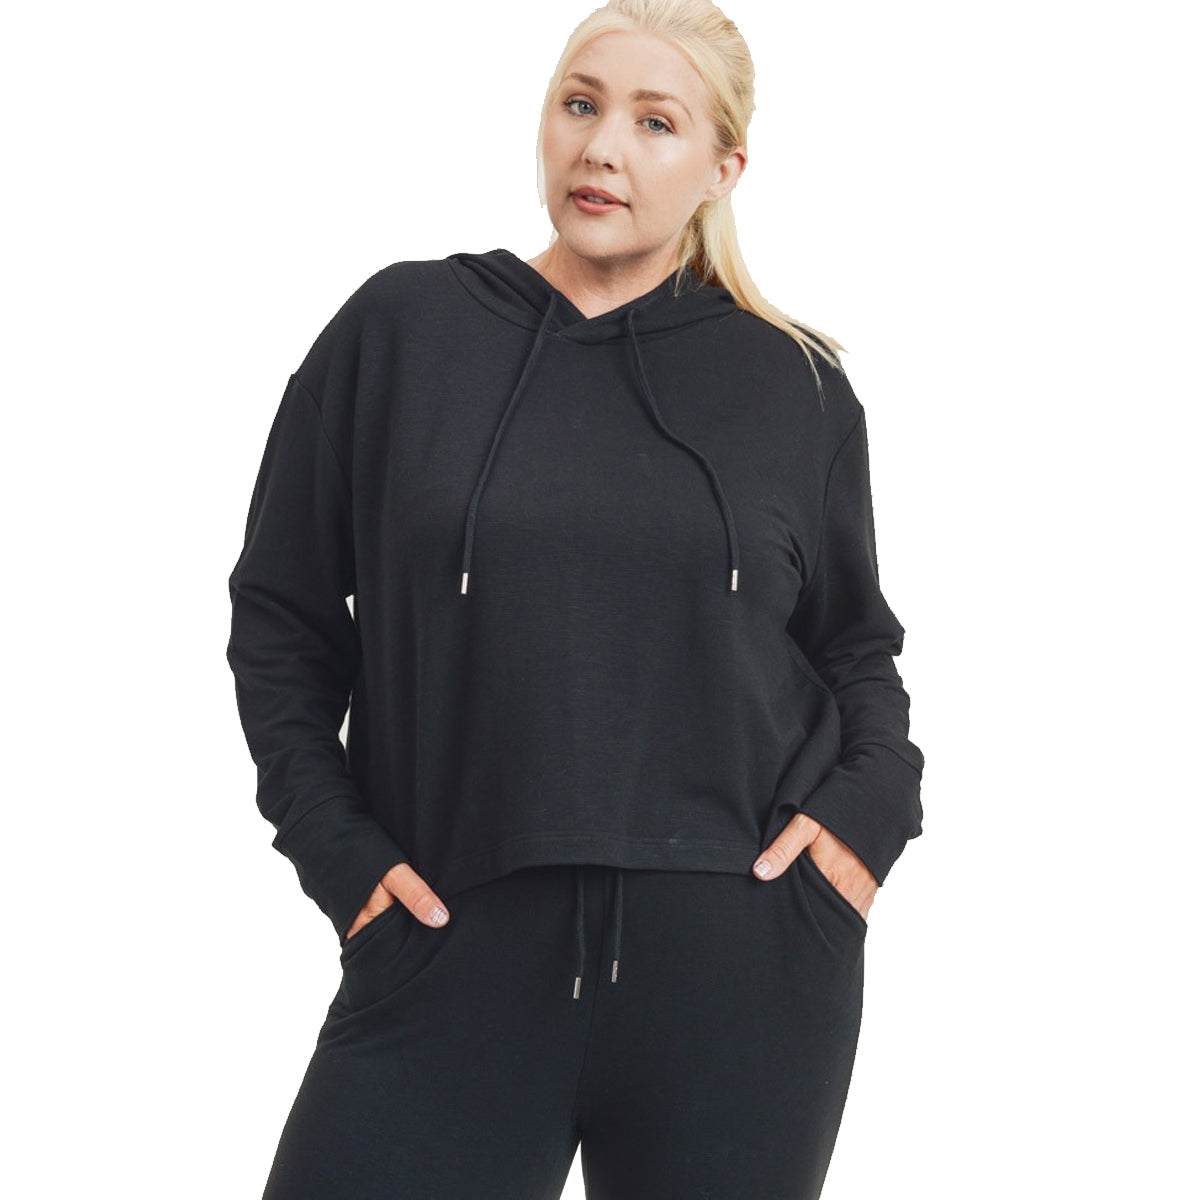 Mono B Women's Cropped Hoodie Boxy Sweatshirt - Black